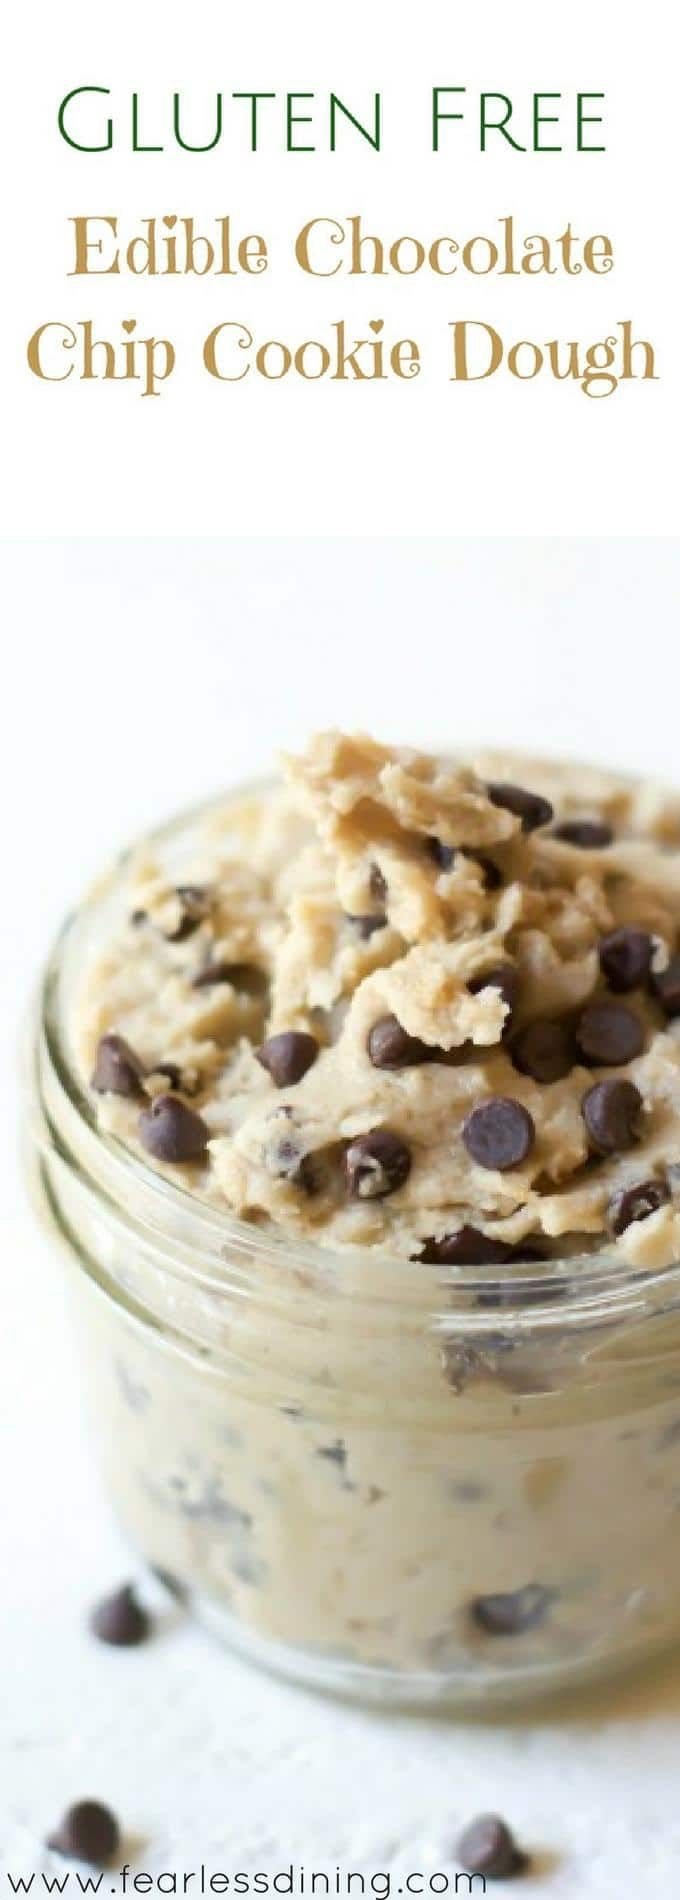 Dip in a spoon! If you love cookie dough, this Gluten Free Edible Cookie Dough is for you. Easy to make in minutes, you can use it as frosting too. How to make edible gluten free cookie dough Recipe at http://www.fearlessdining.com via @fearlessdining